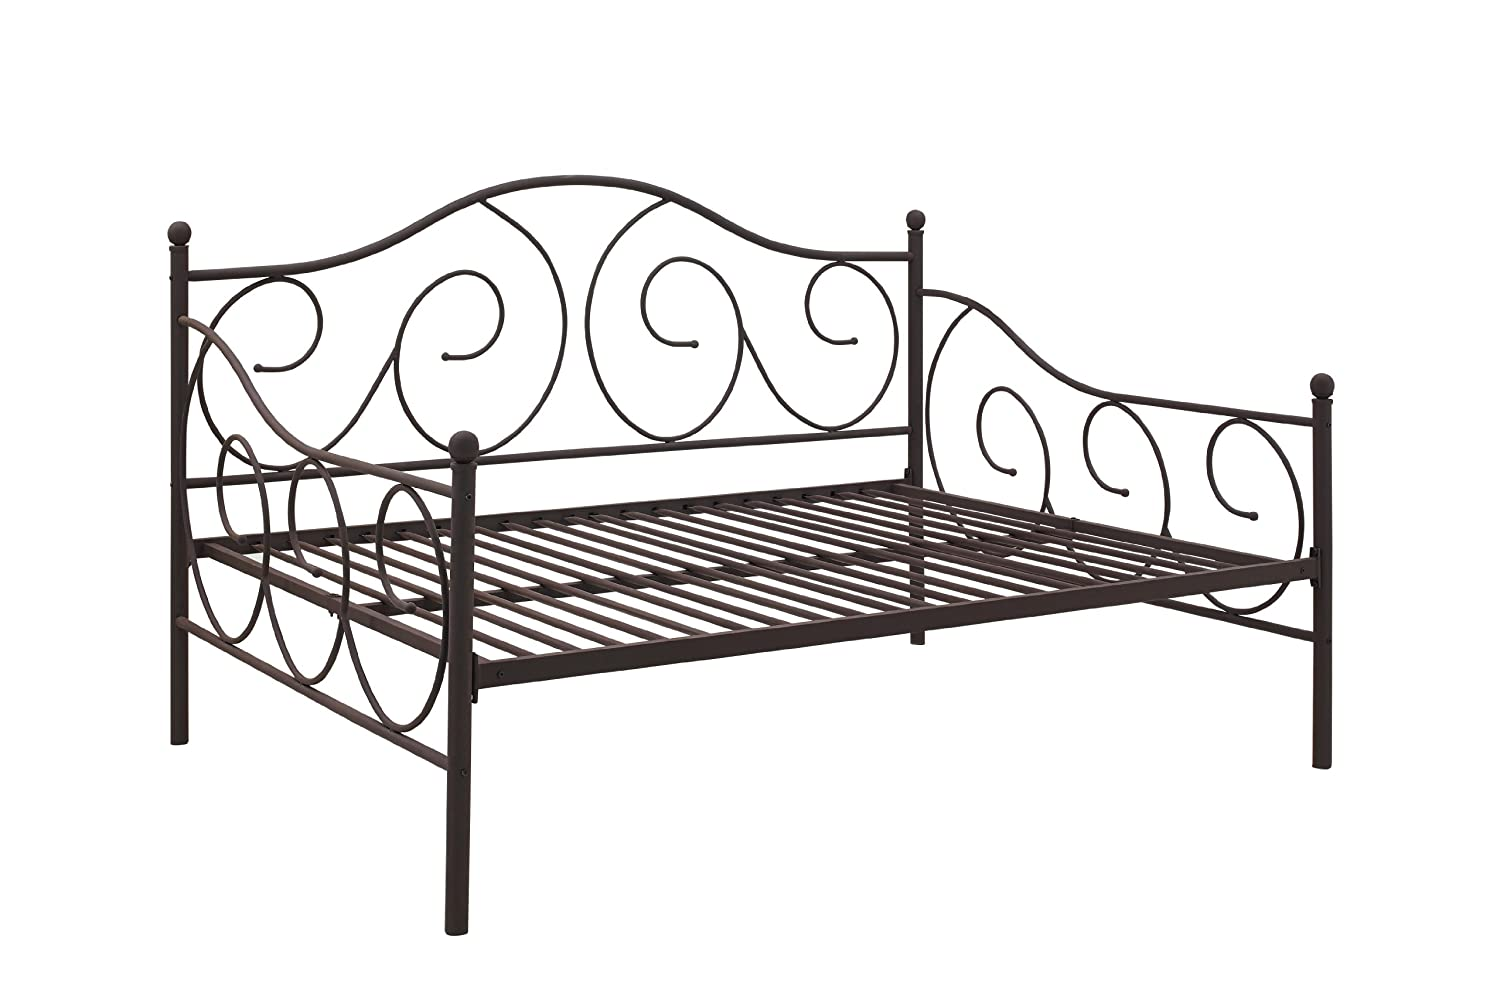 Amazon.com: DHP Victoria Full Size Metal Daybed, Bronze: Kitchen & Dining - Amazon.com: DHP Victoria Full Size Metal Daybed, Bronze: Kitchen